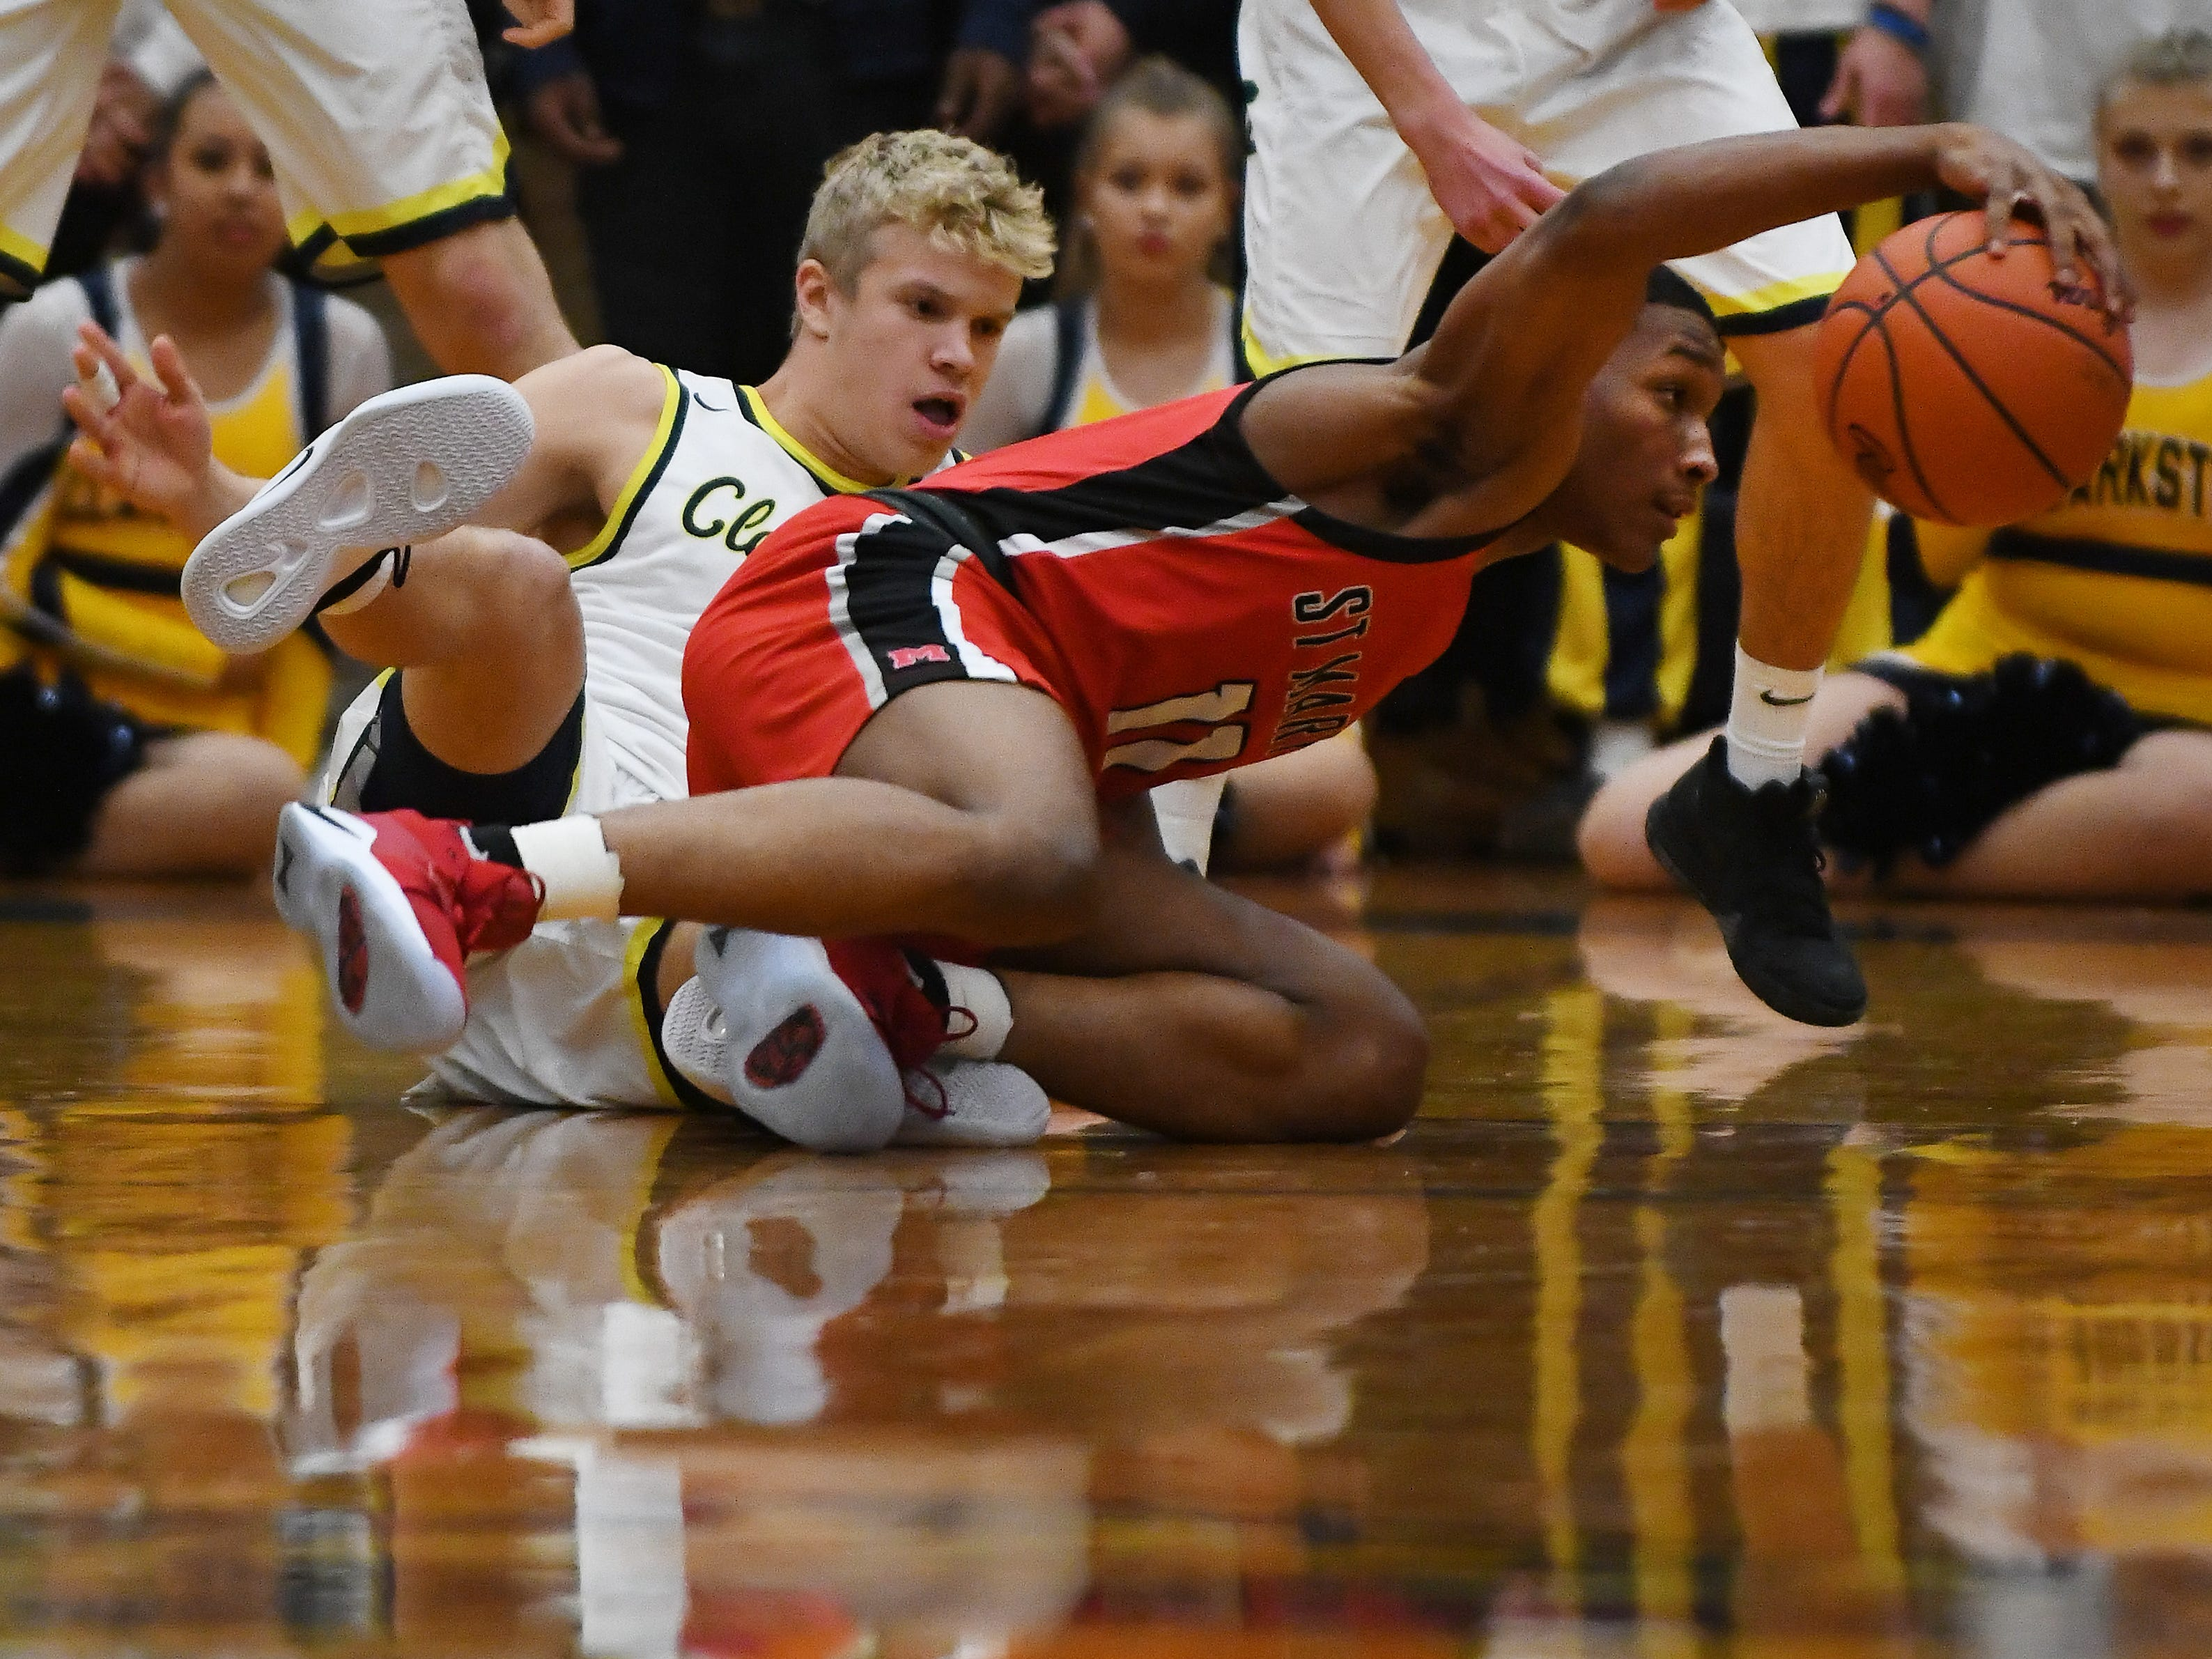 Clarkston's Jake Jensen and St. Mary's Lorne Bowman II battle for a loose ball in the first quarter.